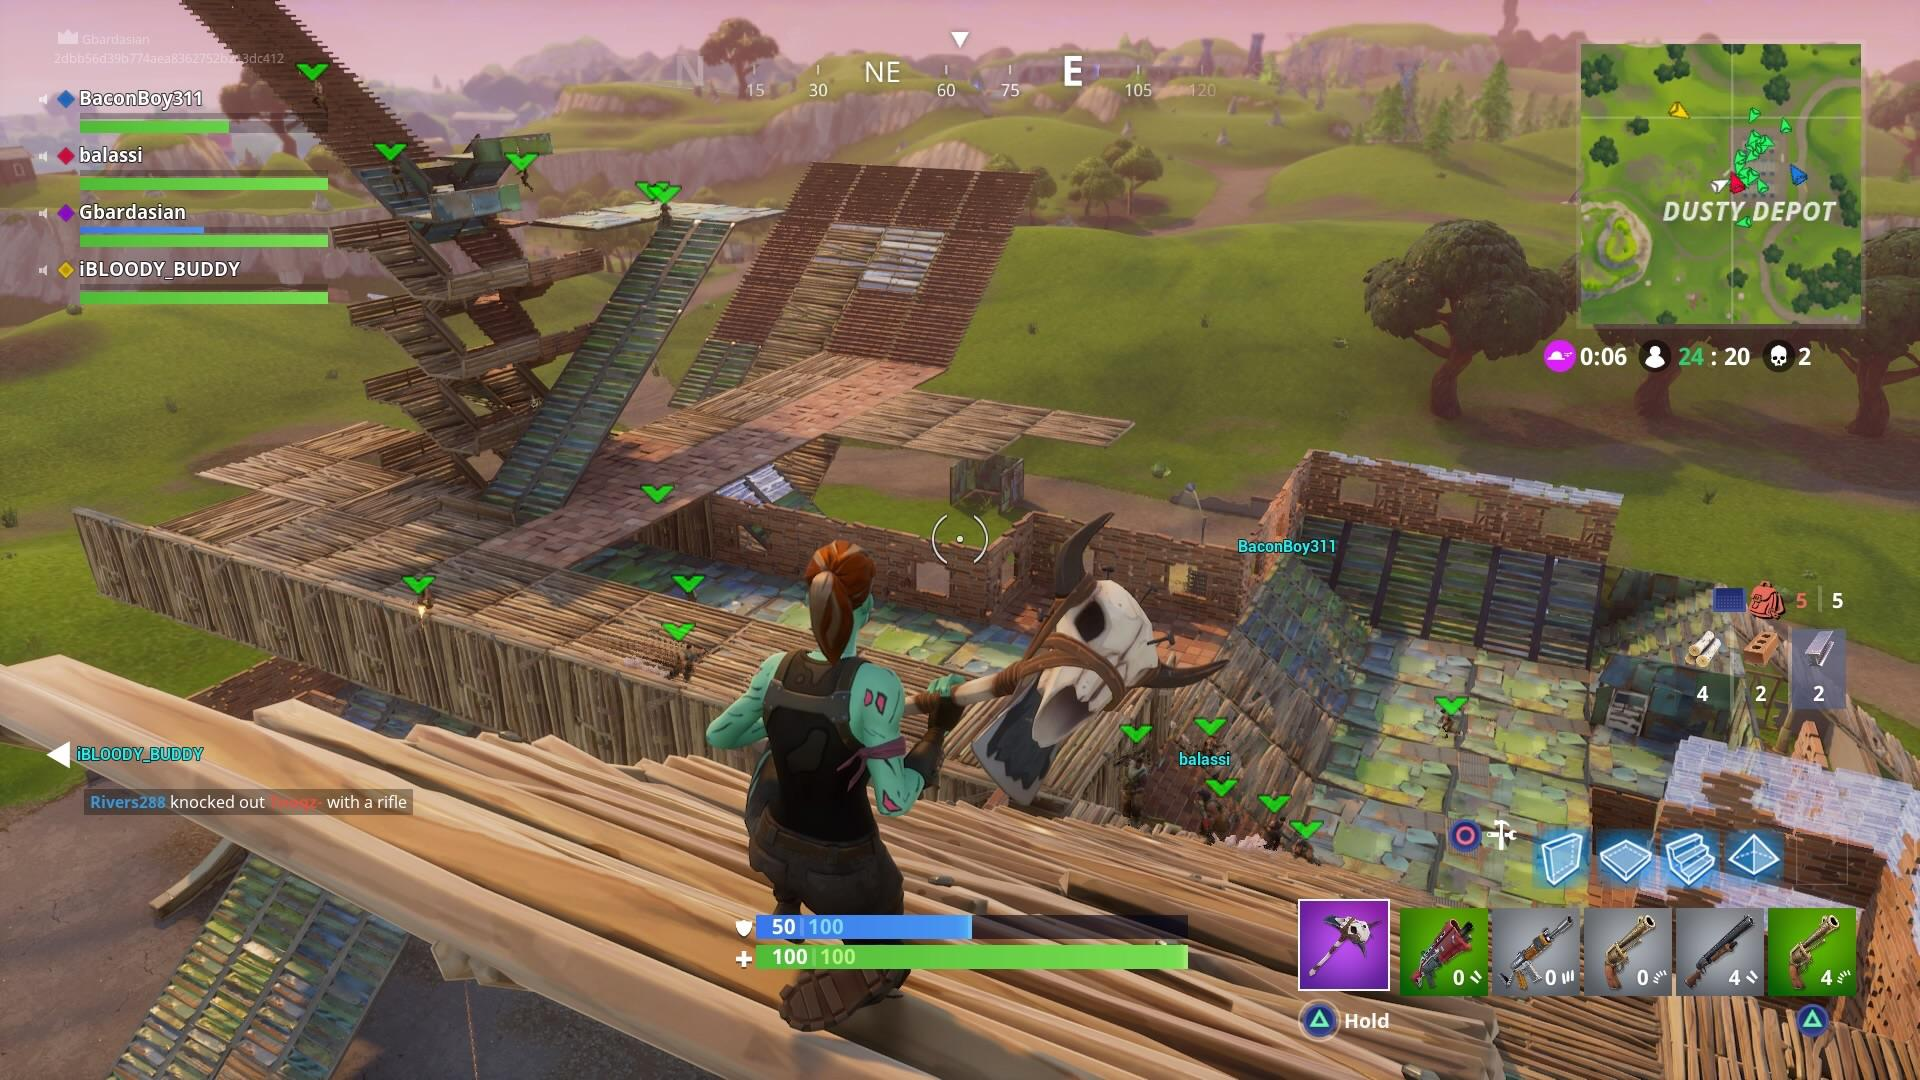 Fortnite A Guide To Combat Building